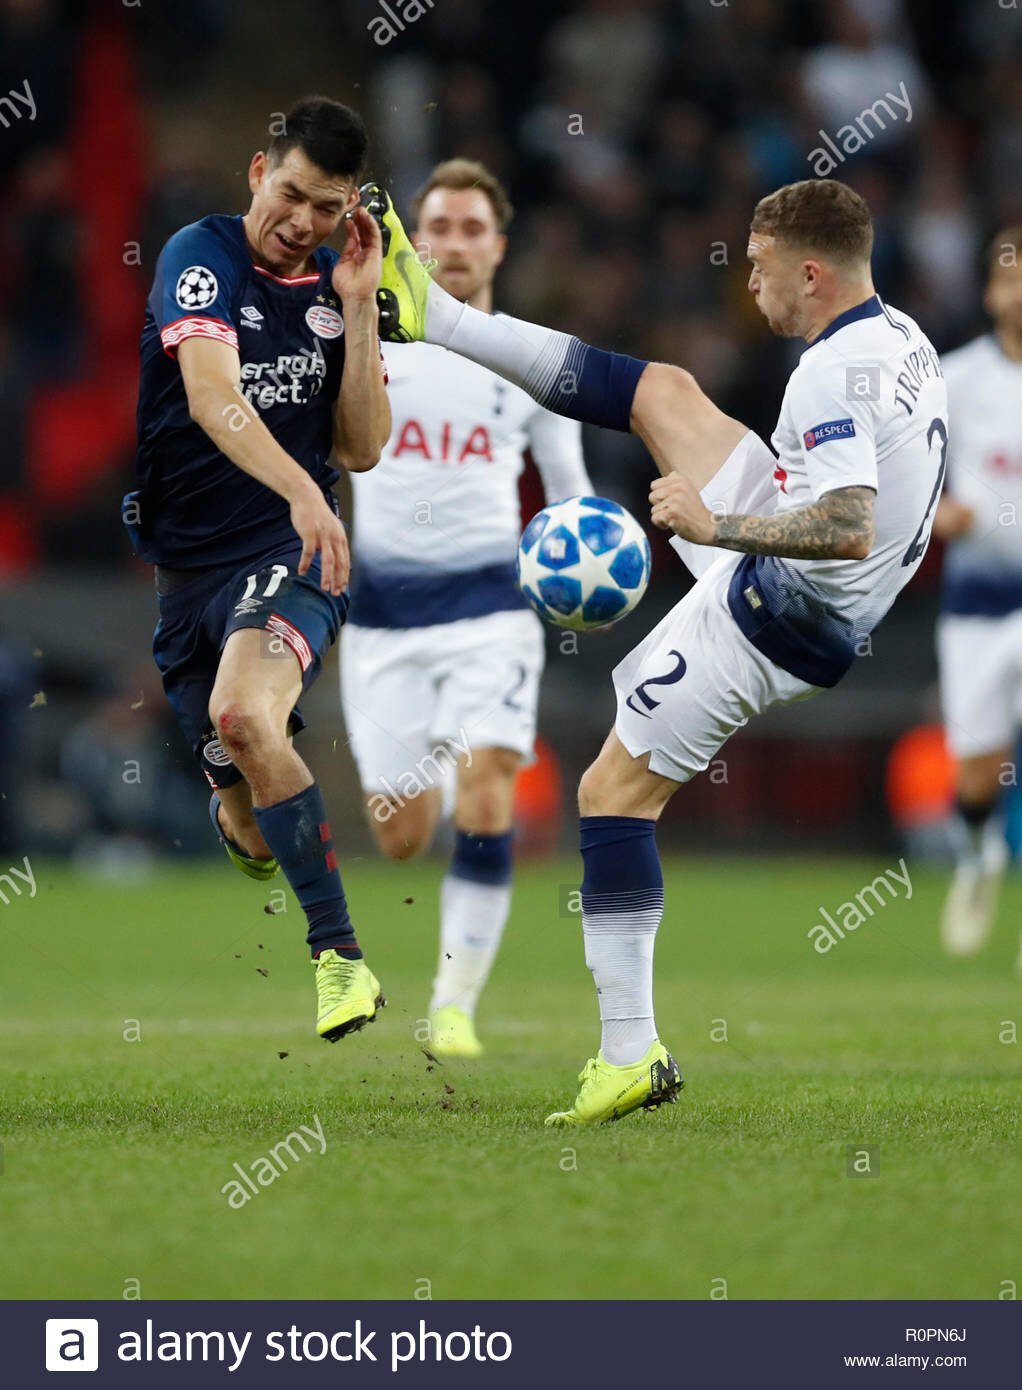 london-uk-6th-nov-2018-tottenham-hotspurs-kieran-trippier-r-fouls-eindhovens-hirving-lozano-during-the-uefa-champions-league-match-between-tottenham-hotspur-and-psv-eindhoven-in-london-britain-on-.jpg 트리피어의 조축노라 챔스 우승 도전기 시즌 2 4화